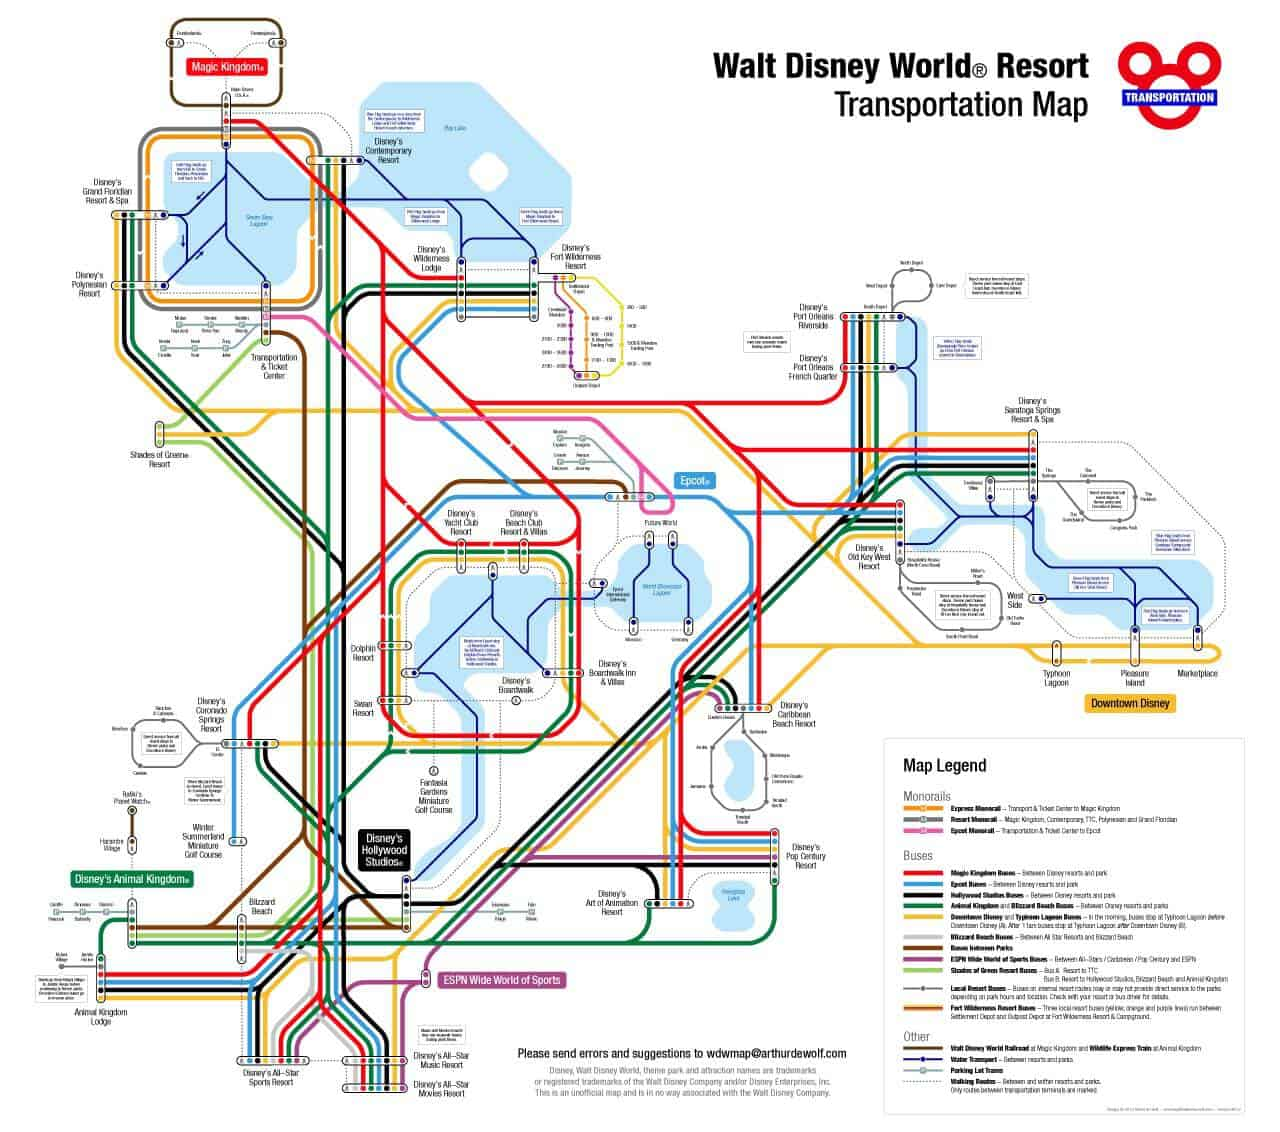 Transportationmap   How To Navigate With Disney World Transportation    PREP007